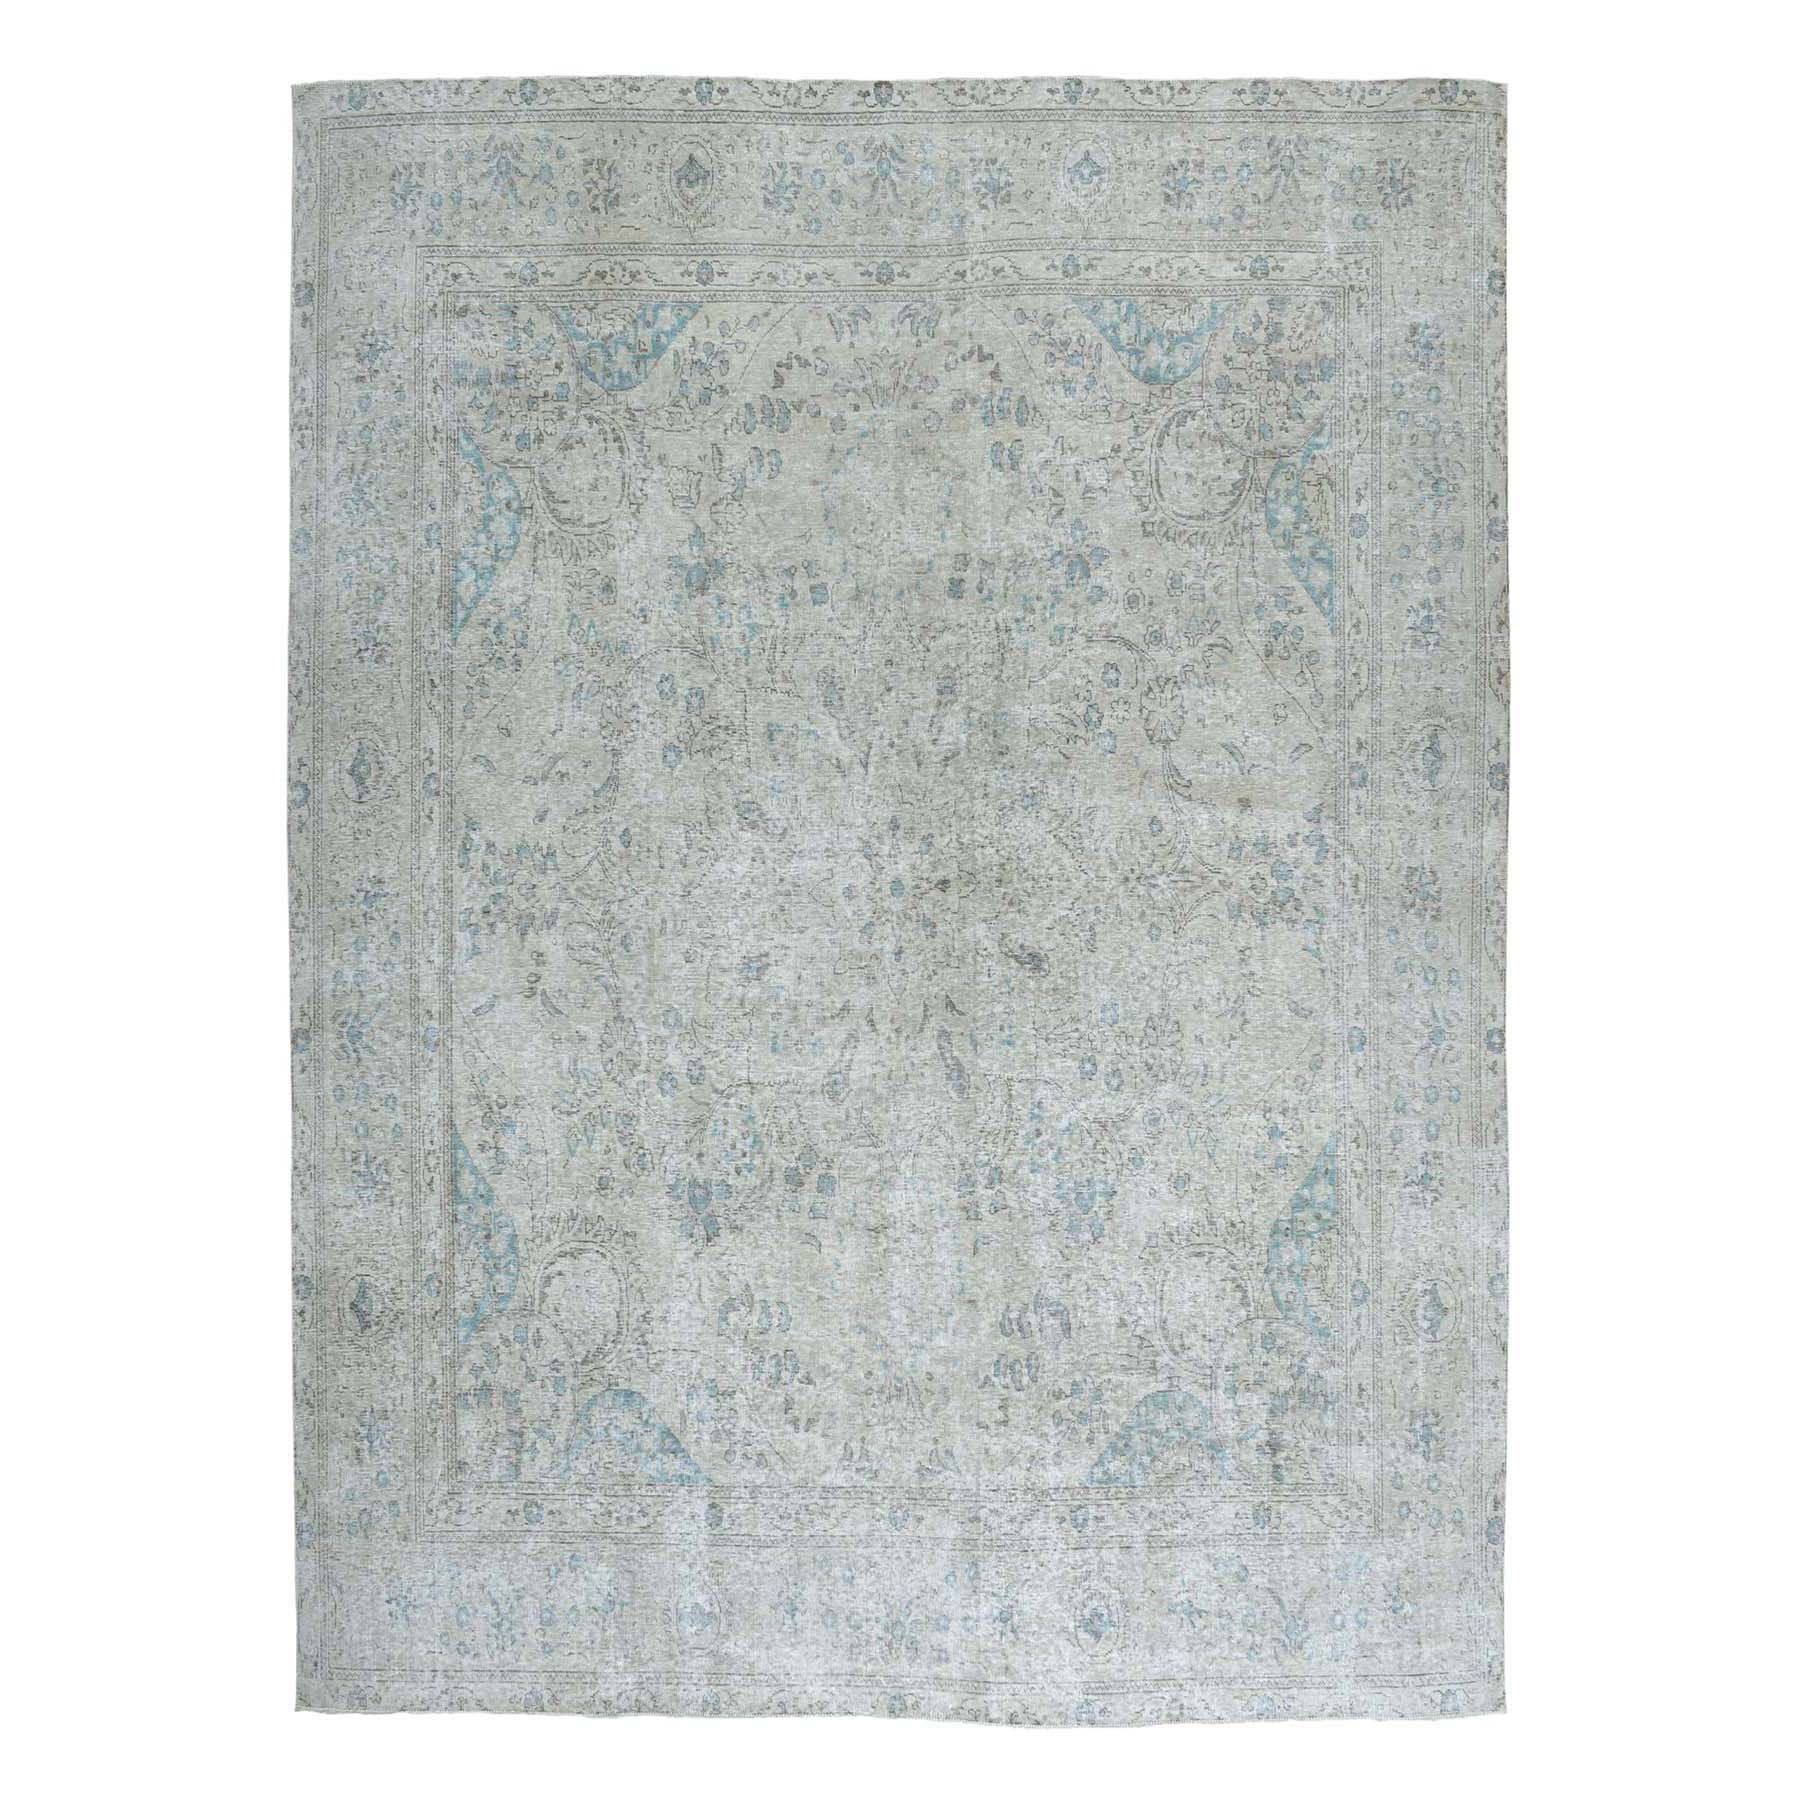 "9'10""X10' Vintage White Wash Tabriz Worn Wool Square Hand-Knotted Oriental Rug moae0ece"